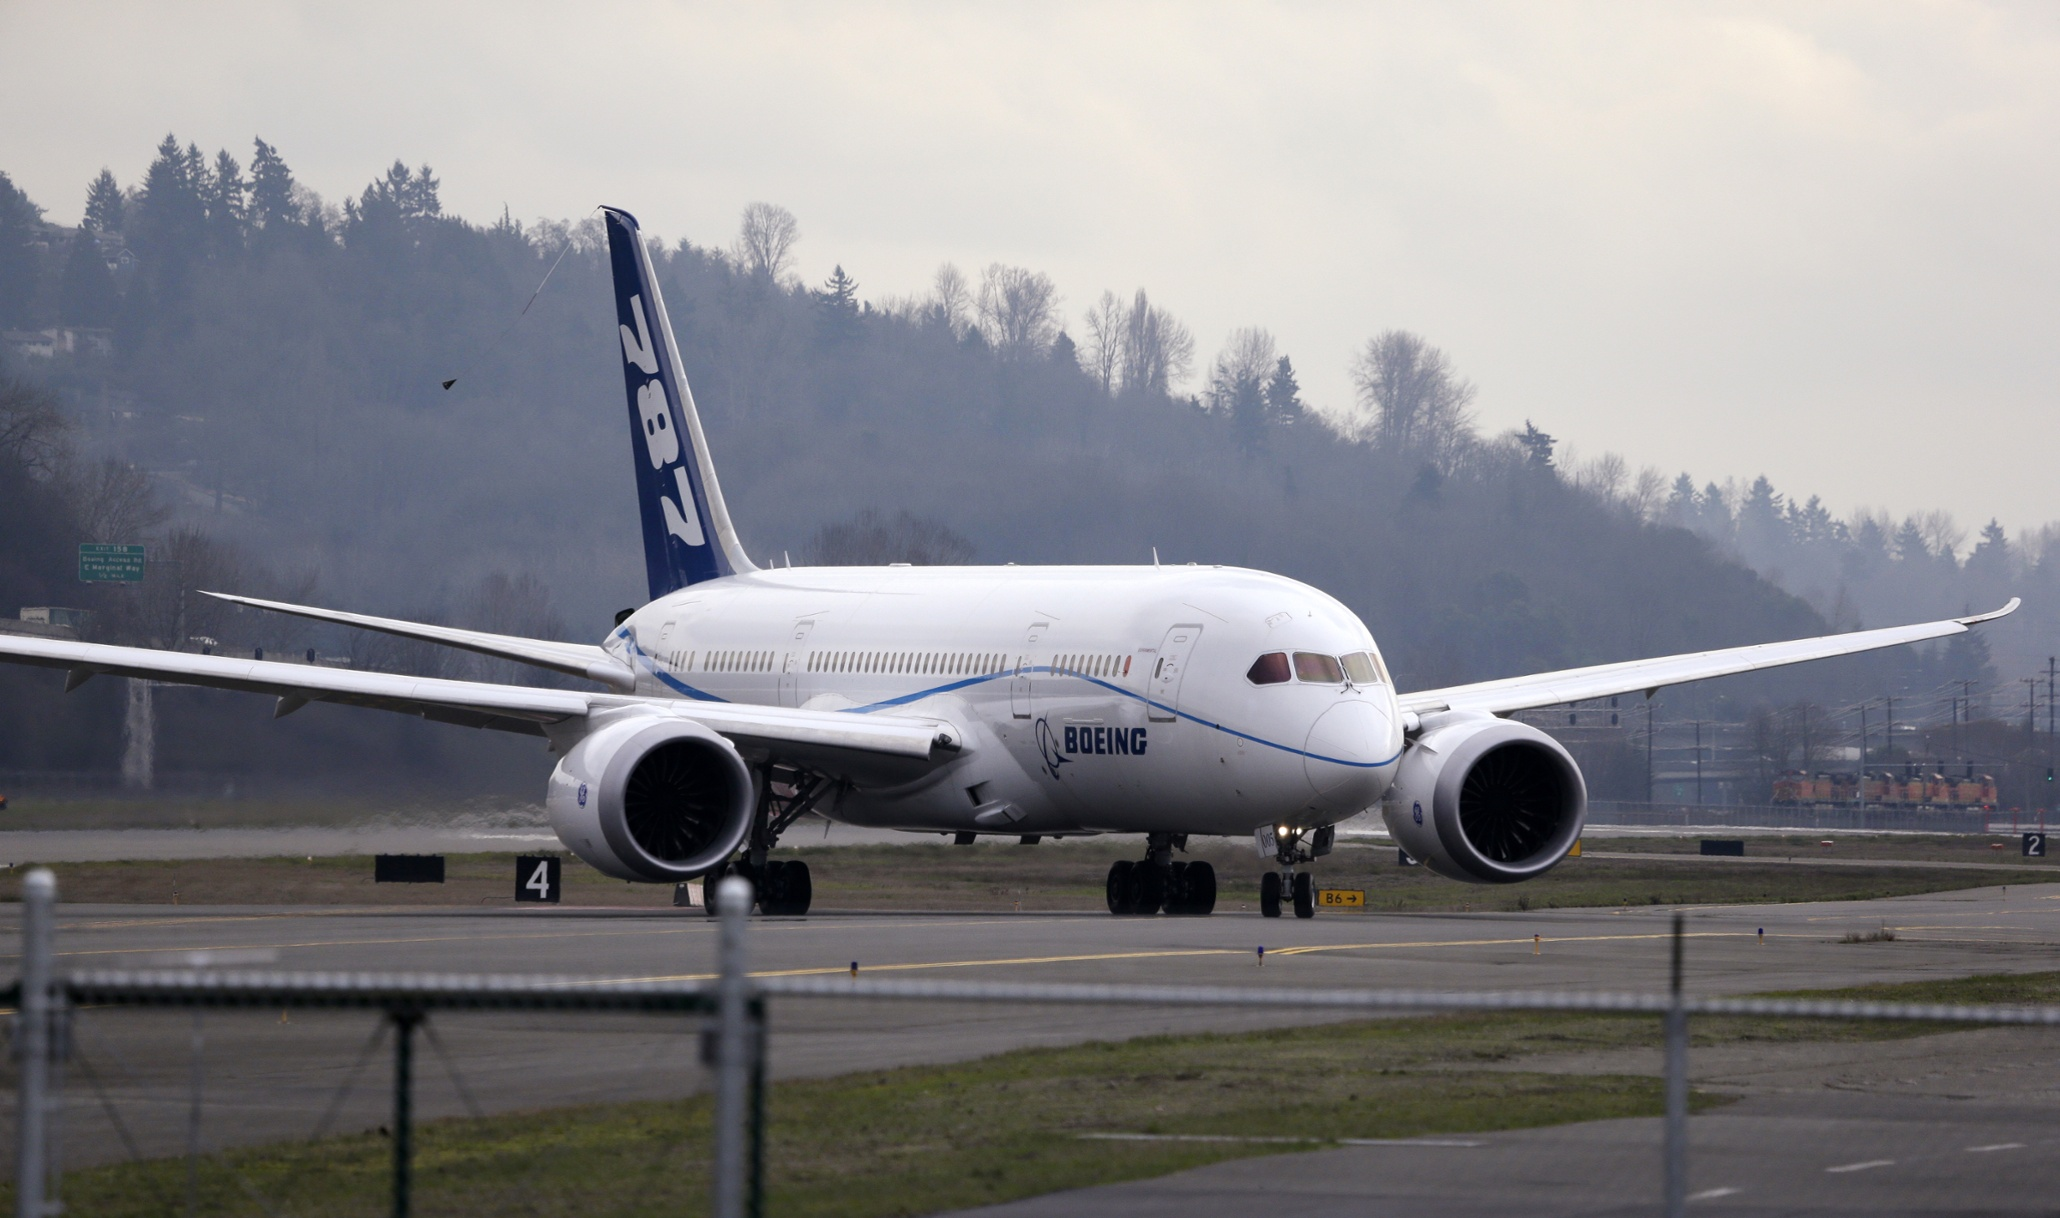 US aviation authority: Boeing 787 software bug could cause 'loss of control'